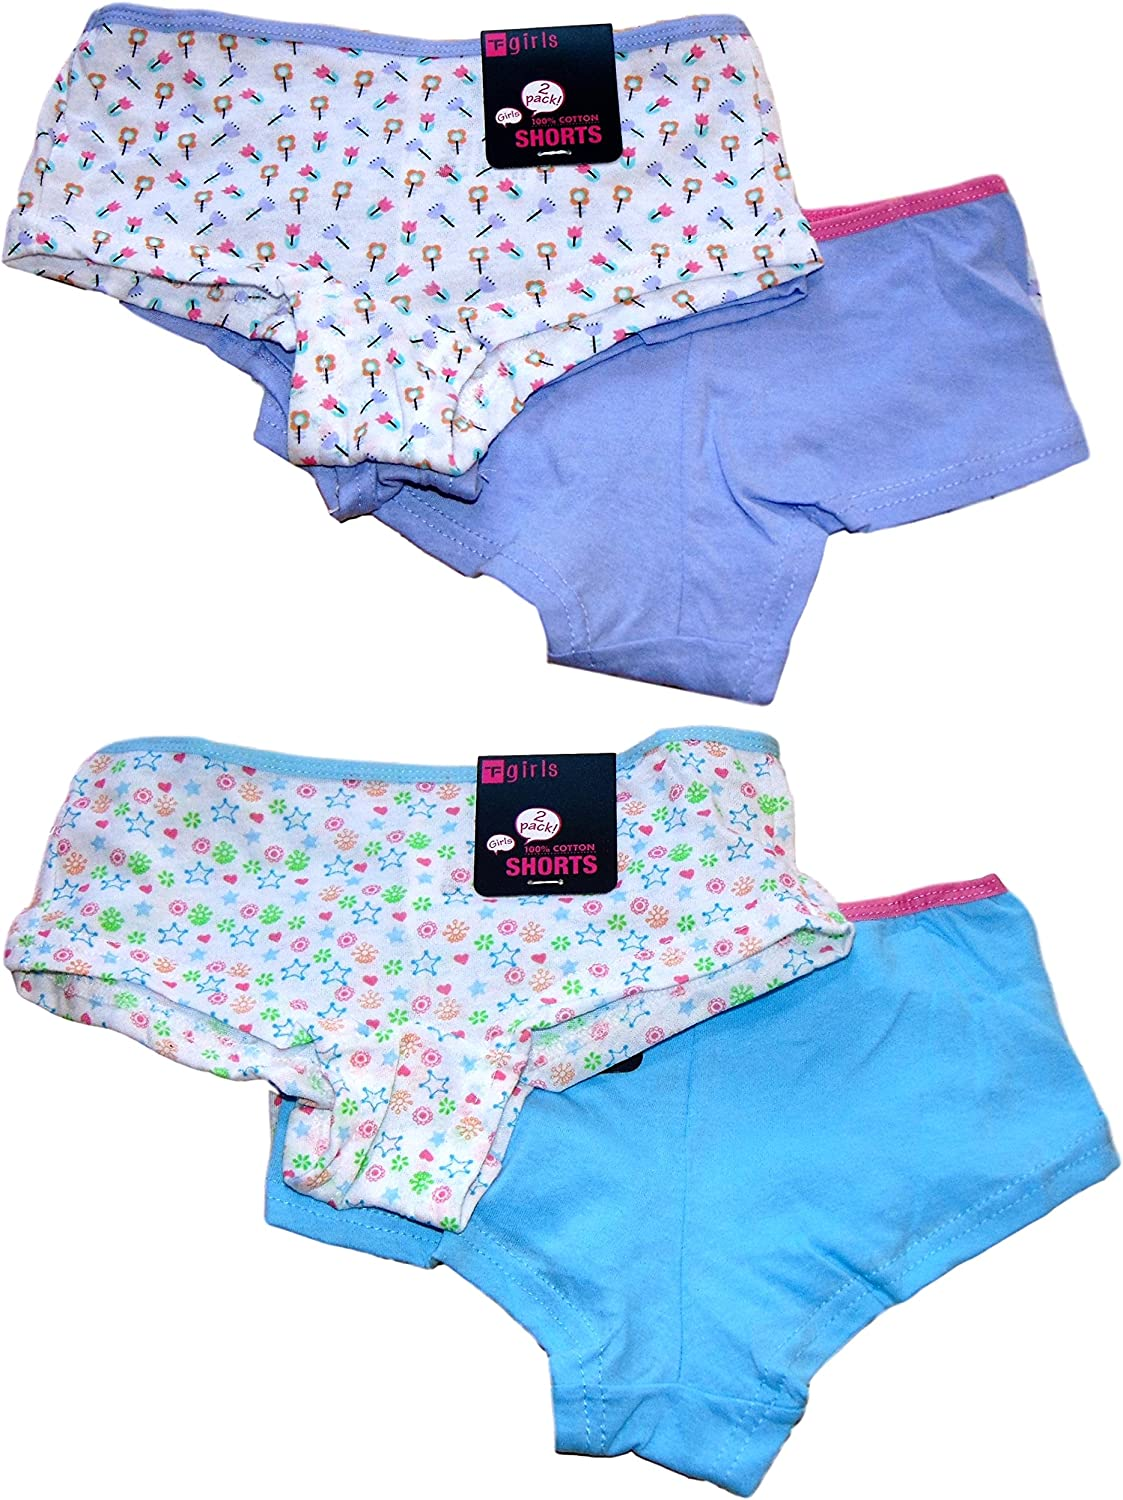 *New in* 4 Pairs Girls 100/% Cotton Boxers Boyshorts Knickers Ages 5-12 Years